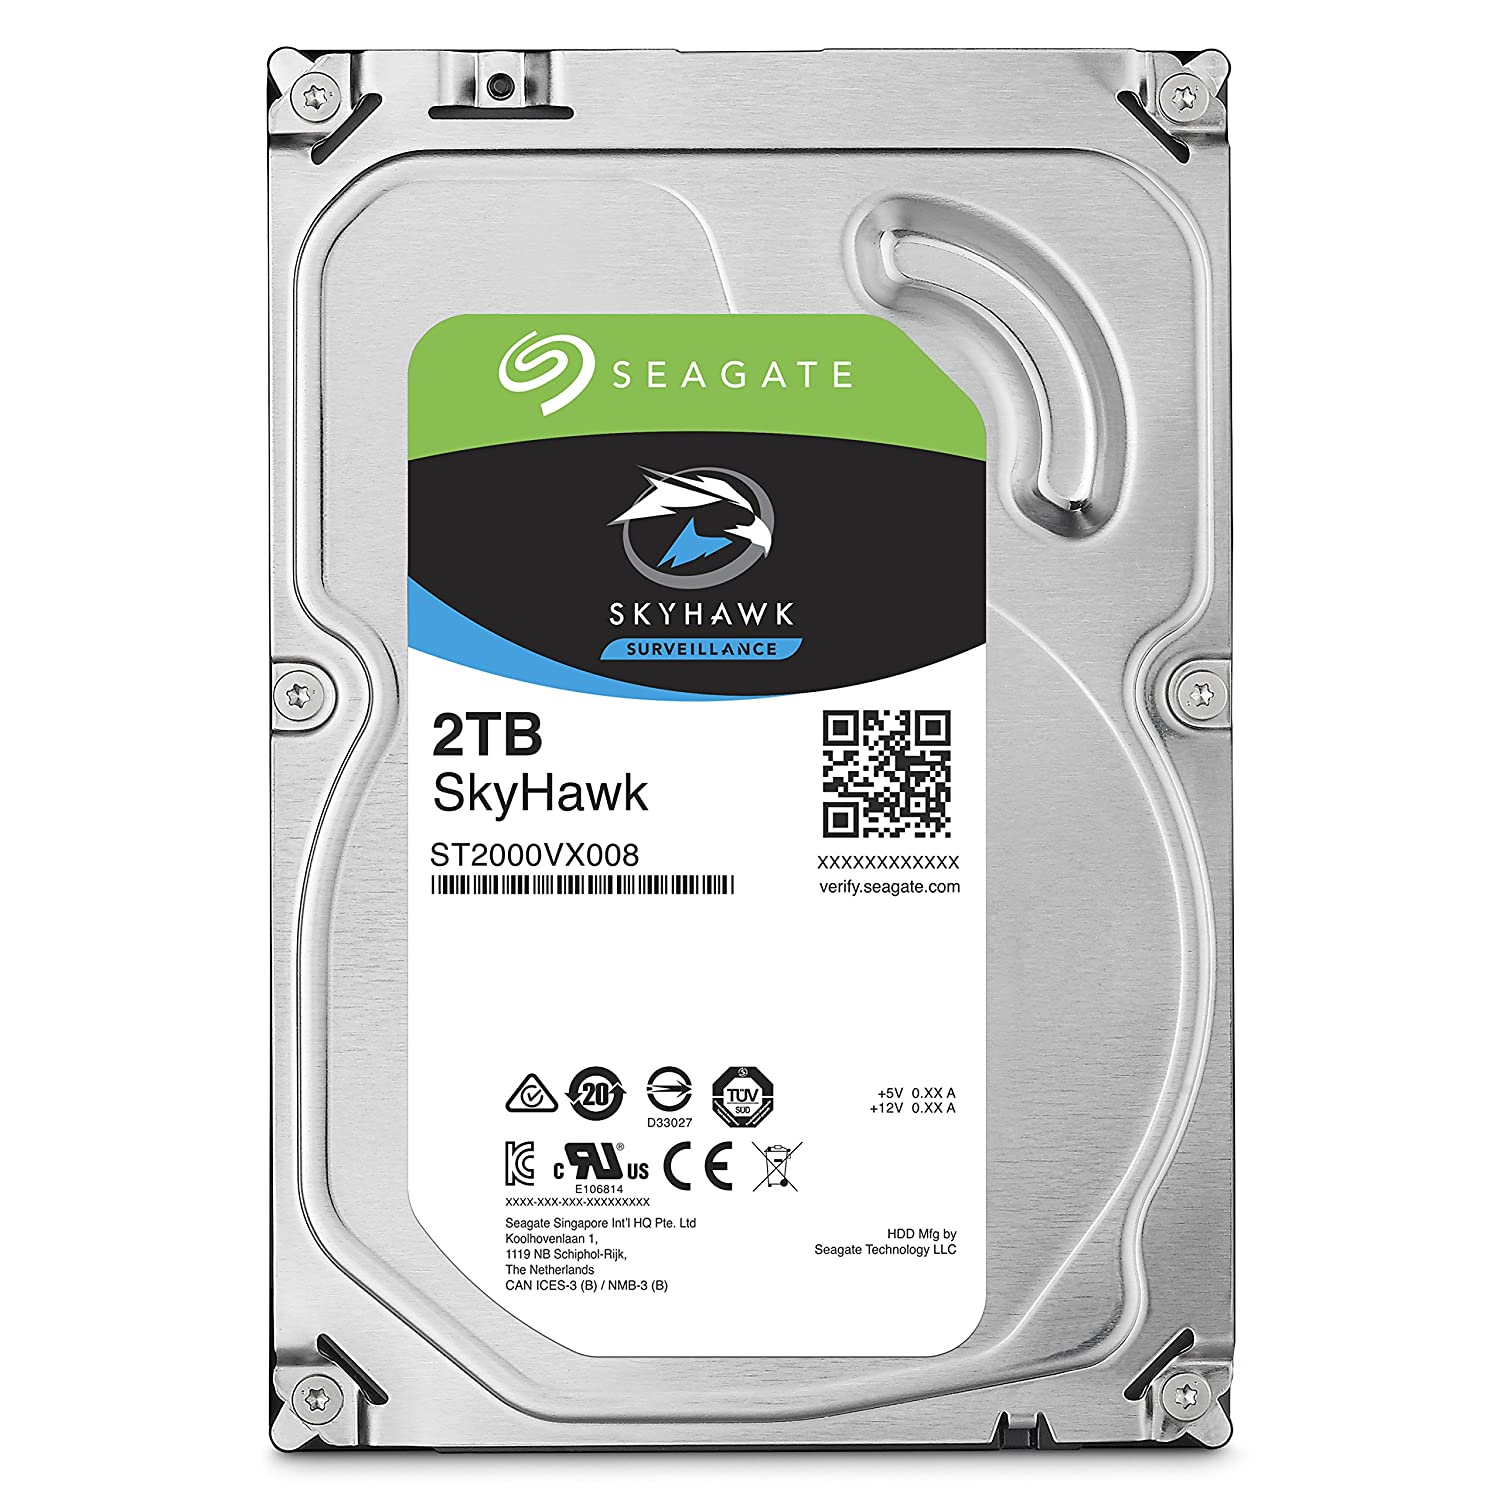 how to reset seagate hard drive to factory settings